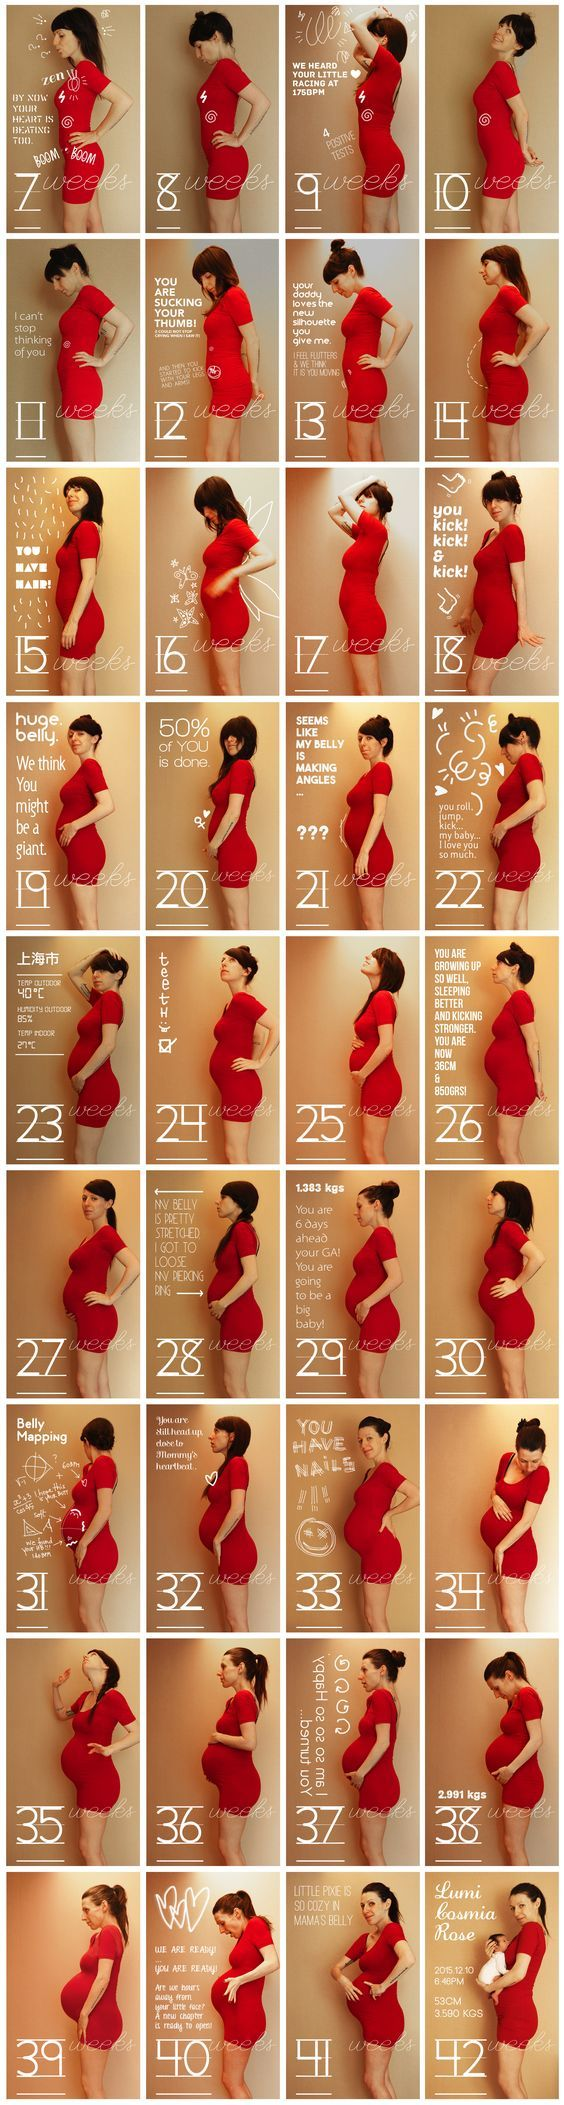 #maternity #bellyprogression